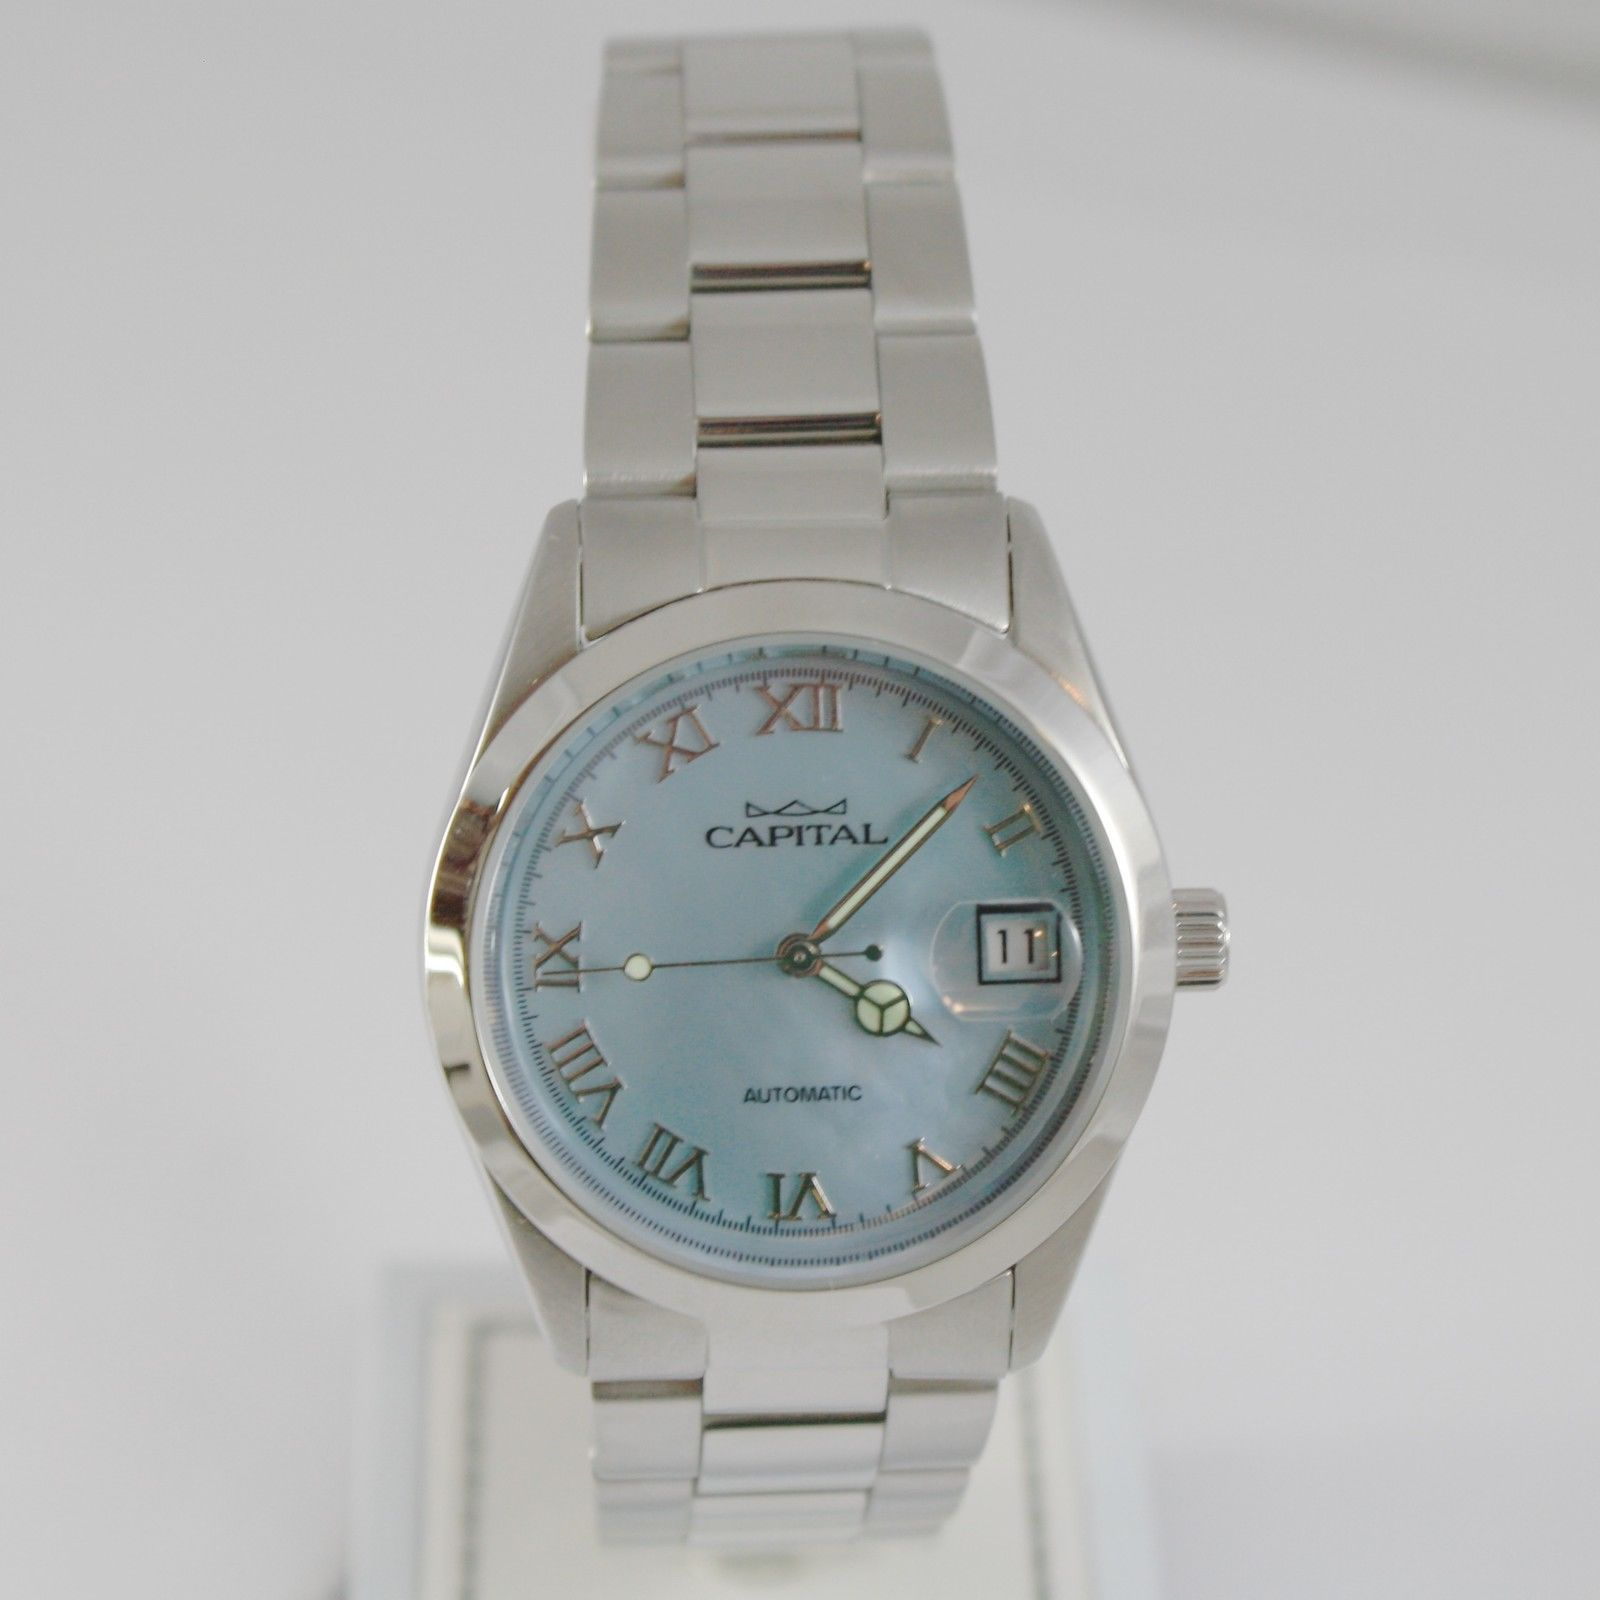 CAPITAL WATCH AUTOMATIC MOVEMENT 35 MM CASE WITH DATE, BLUE MOTHER OF PEARL